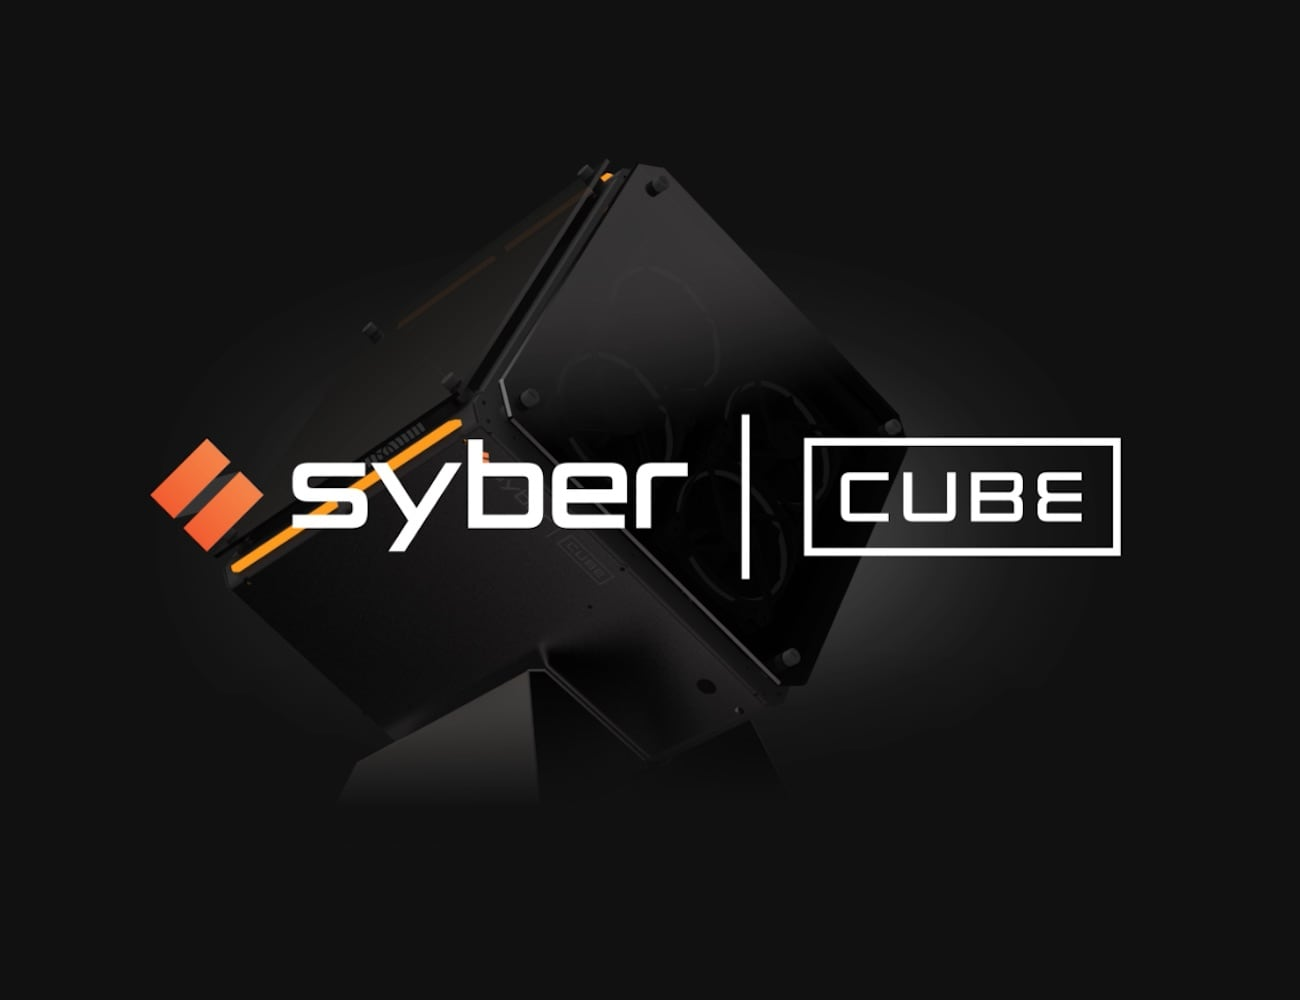 Syber Cube Xtreme 400 Gaming PC